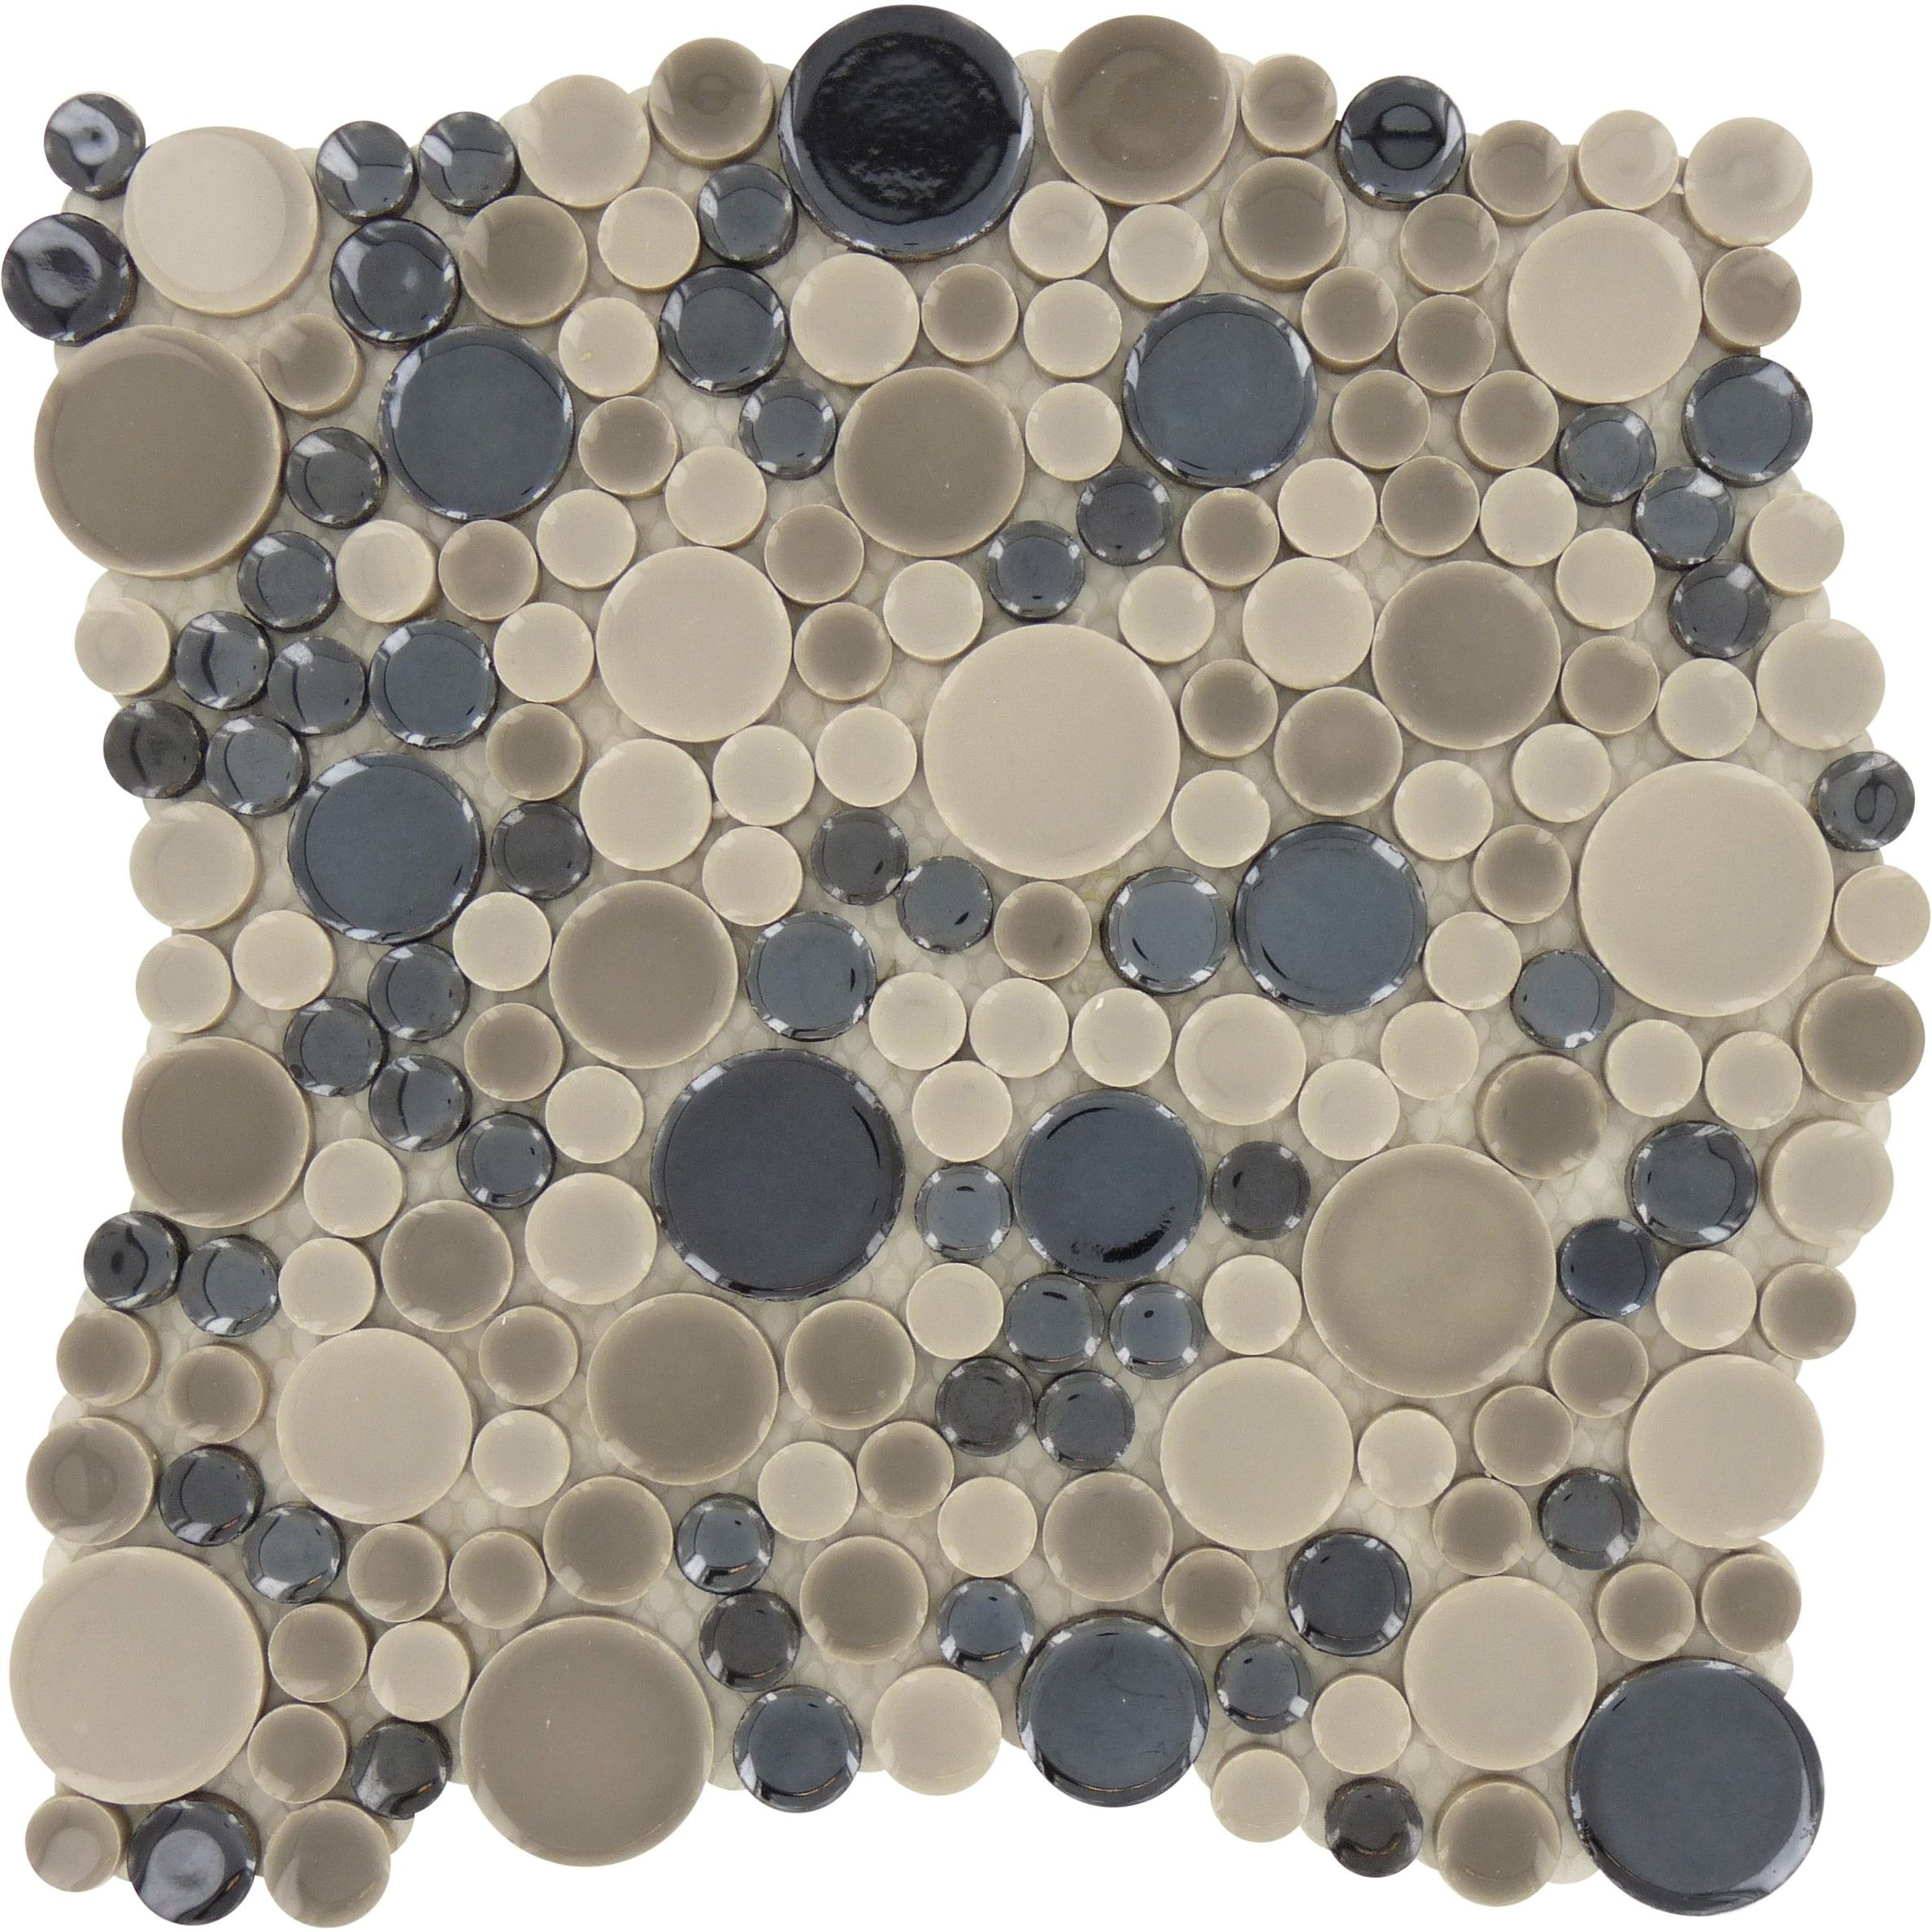 Sheet Size 11 X 11 Tile Size Circles Tile Thickness 14 Grout